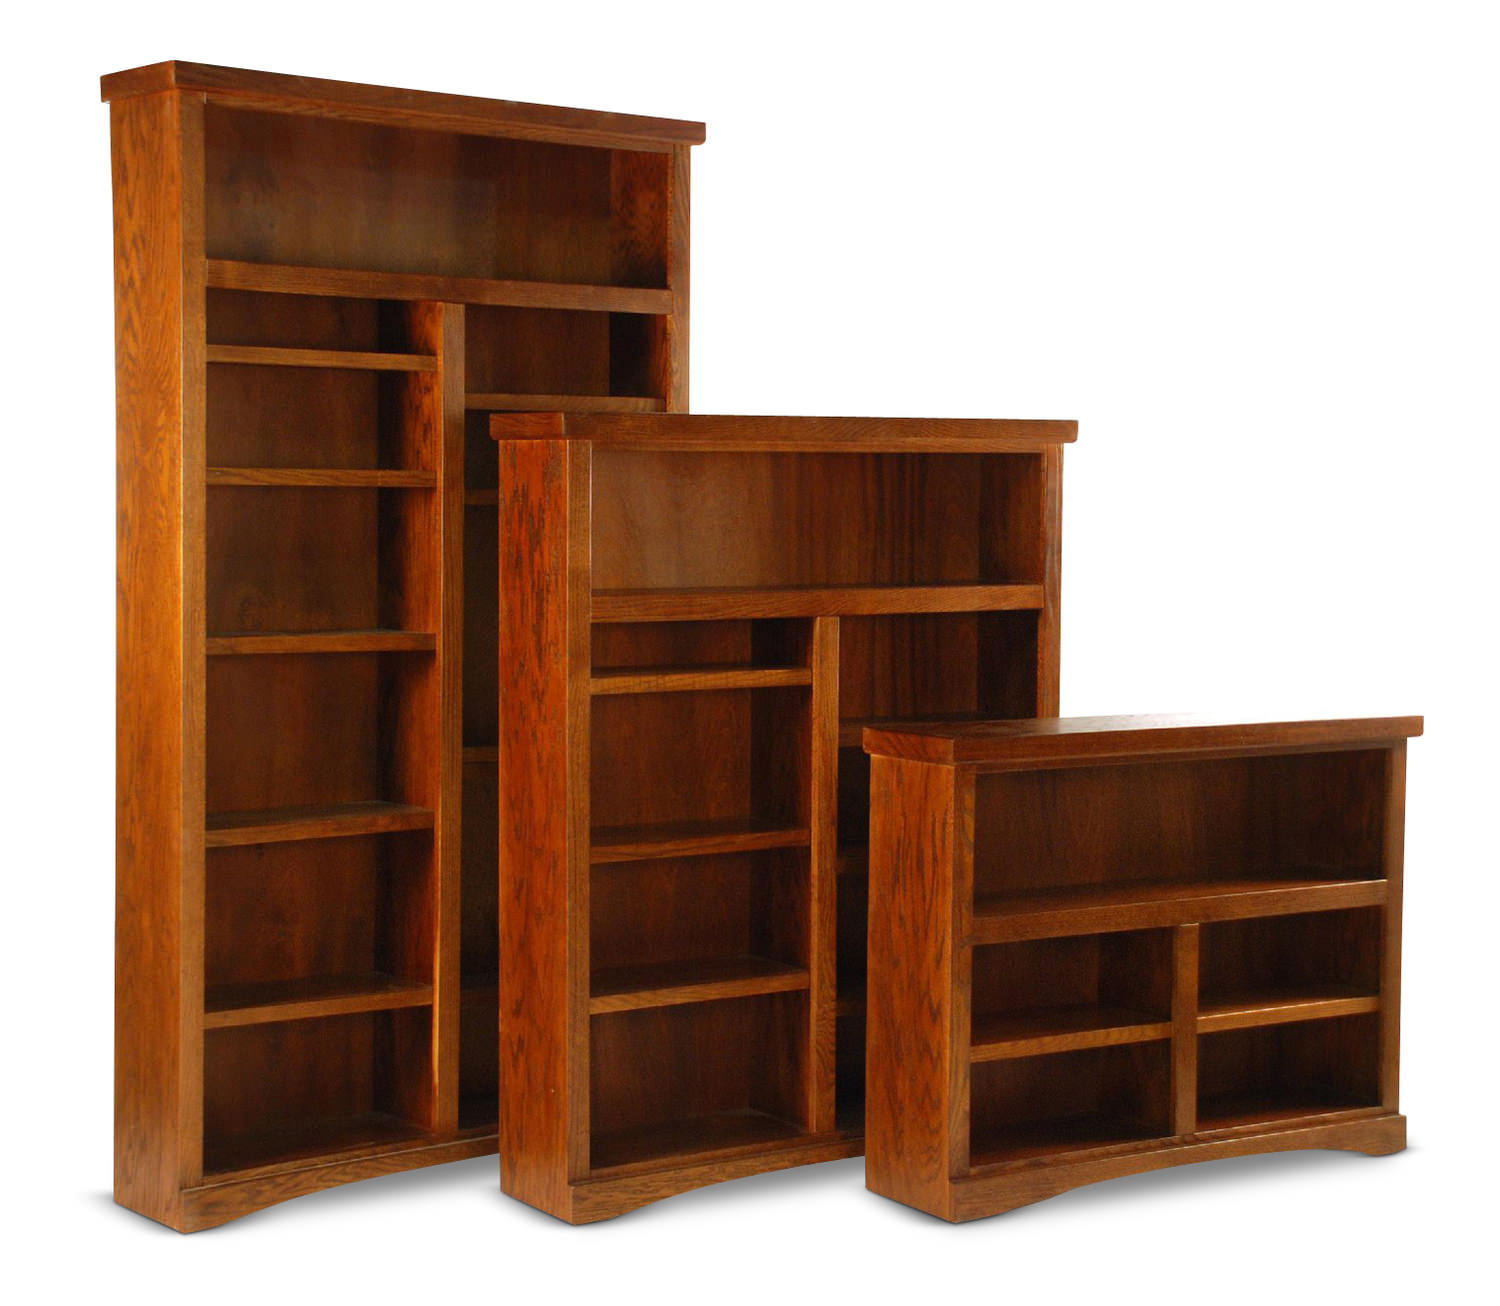 48 wide mission bookcase hom furniture. Black Bedroom Furniture Sets. Home Design Ideas